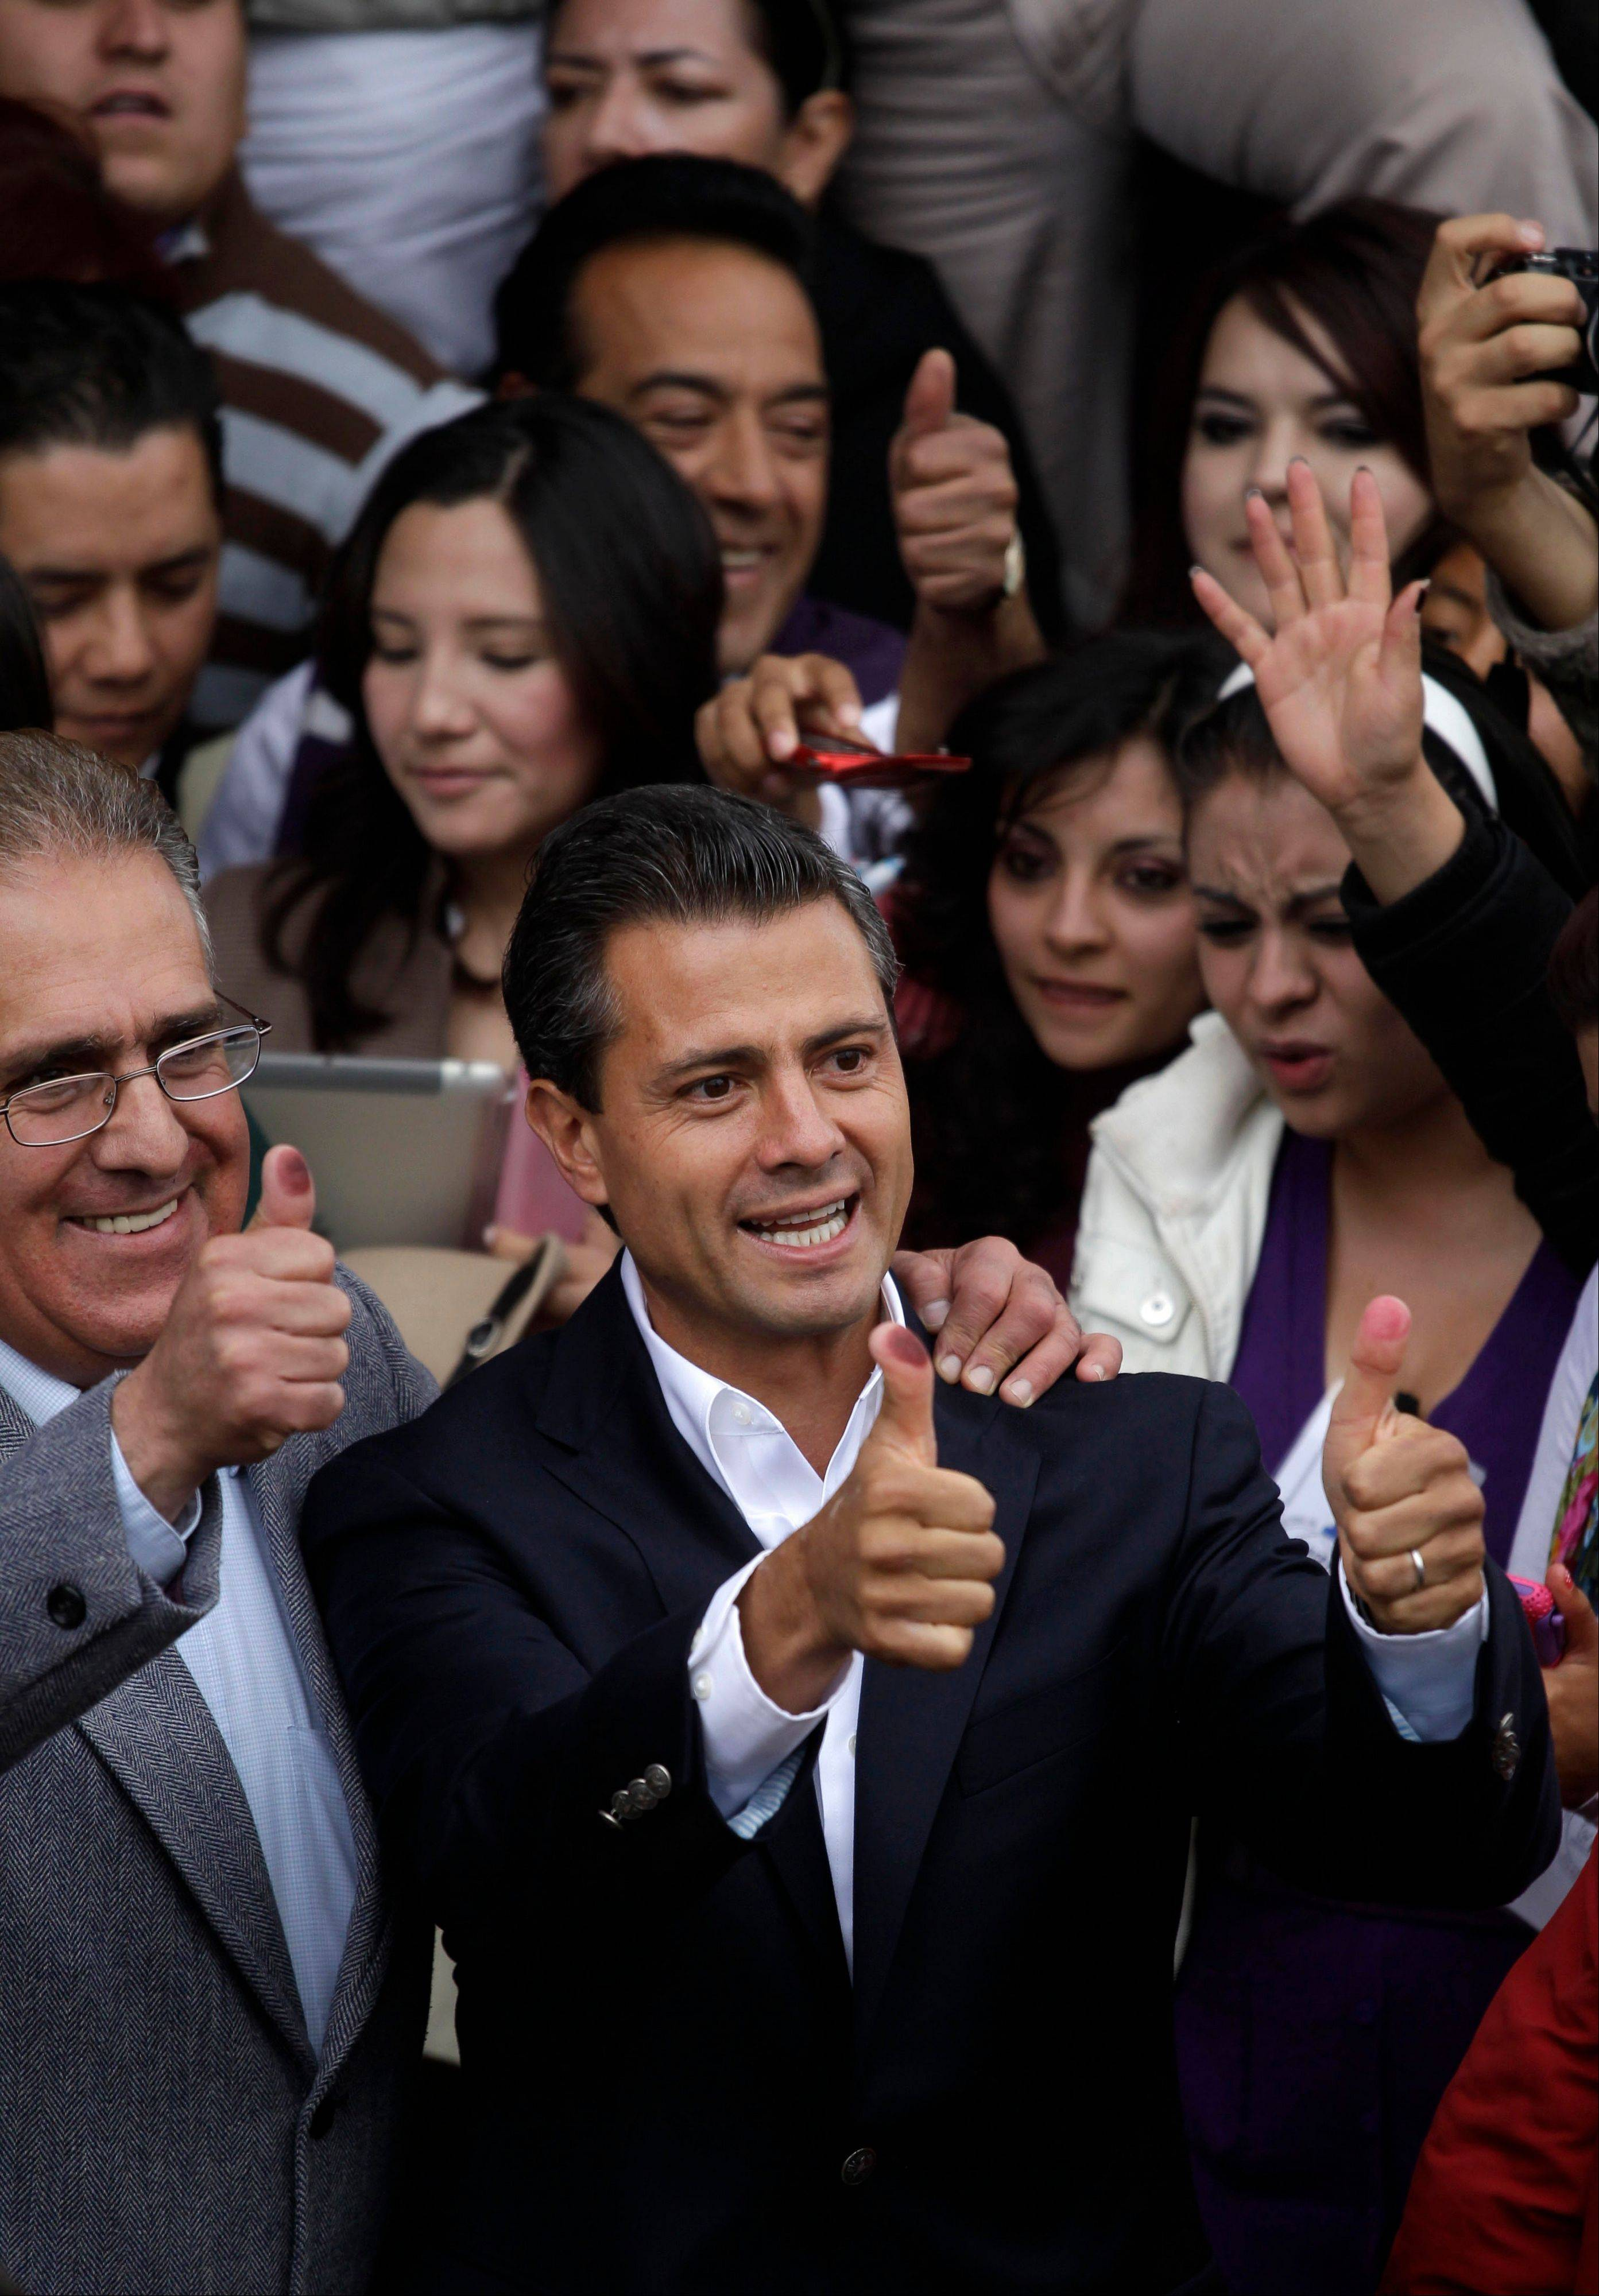 Enrique Pena Nieto, presidential candidate for the Revolutionary Institutional Party (PRI), shows his ink-stained thumbs after he cast his vote during general elections in Atlacomulco, Mexico, Sunday.